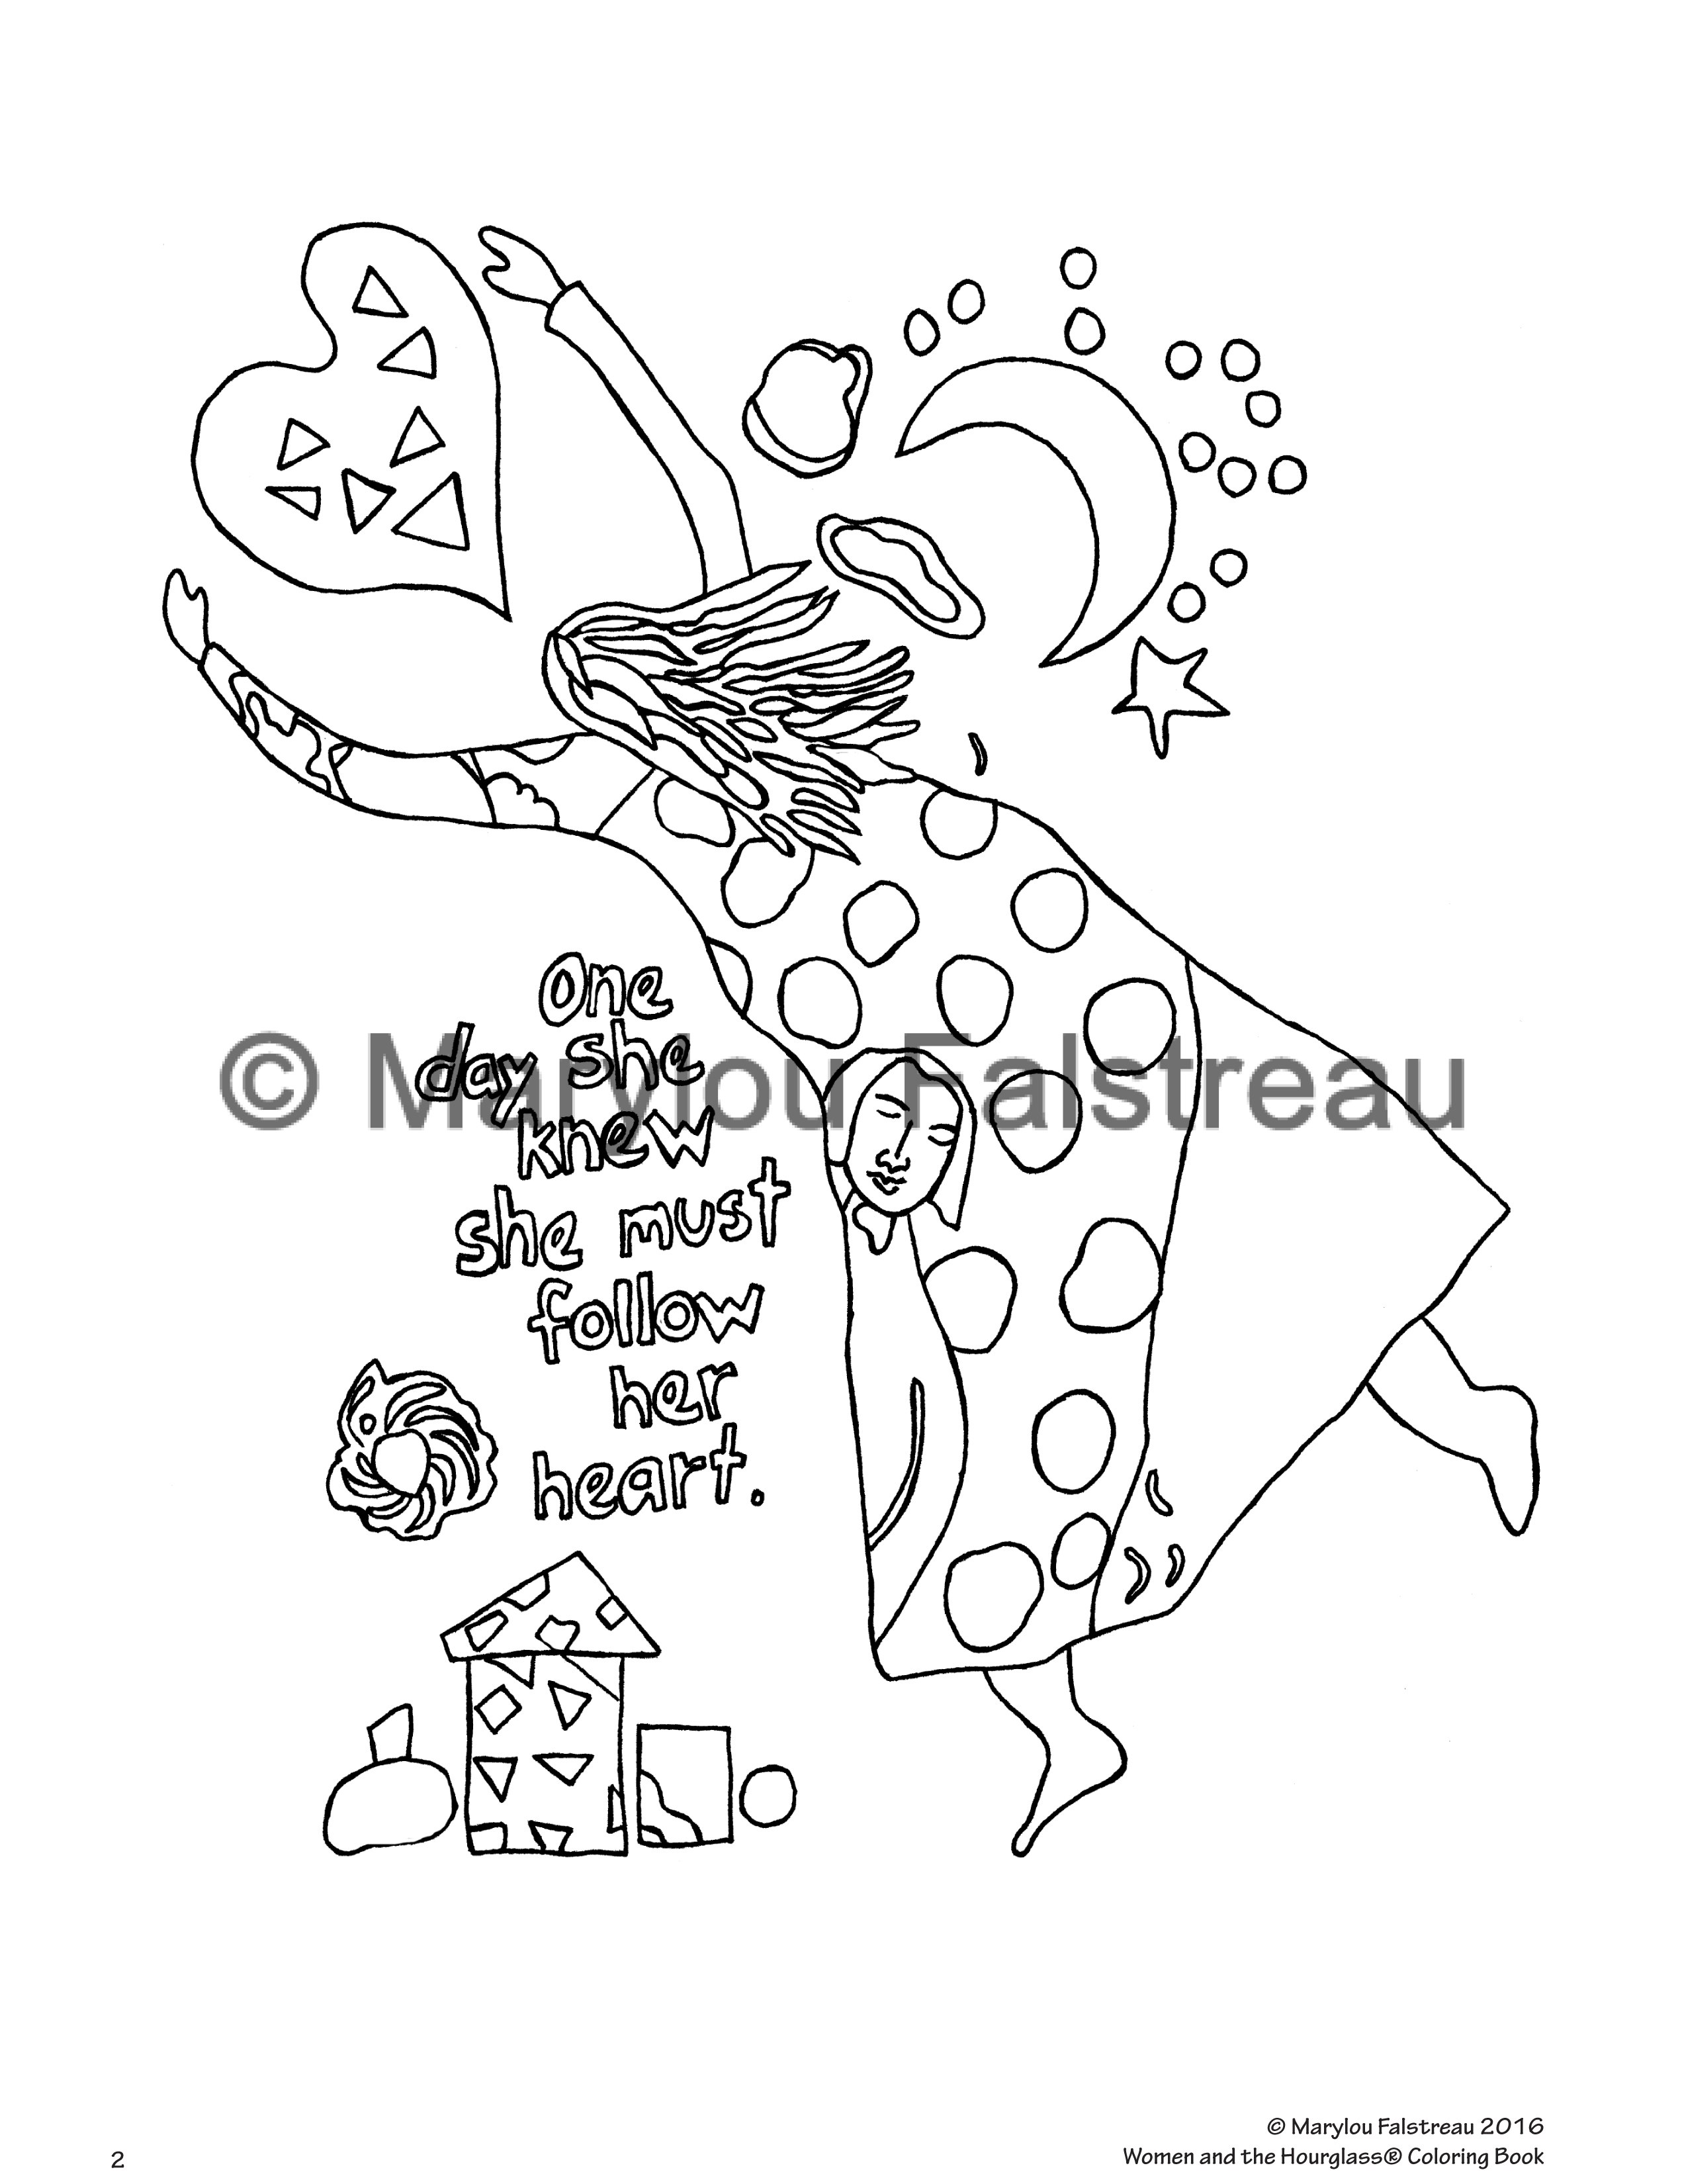 women and the hourglass coloring book marylou falstreau